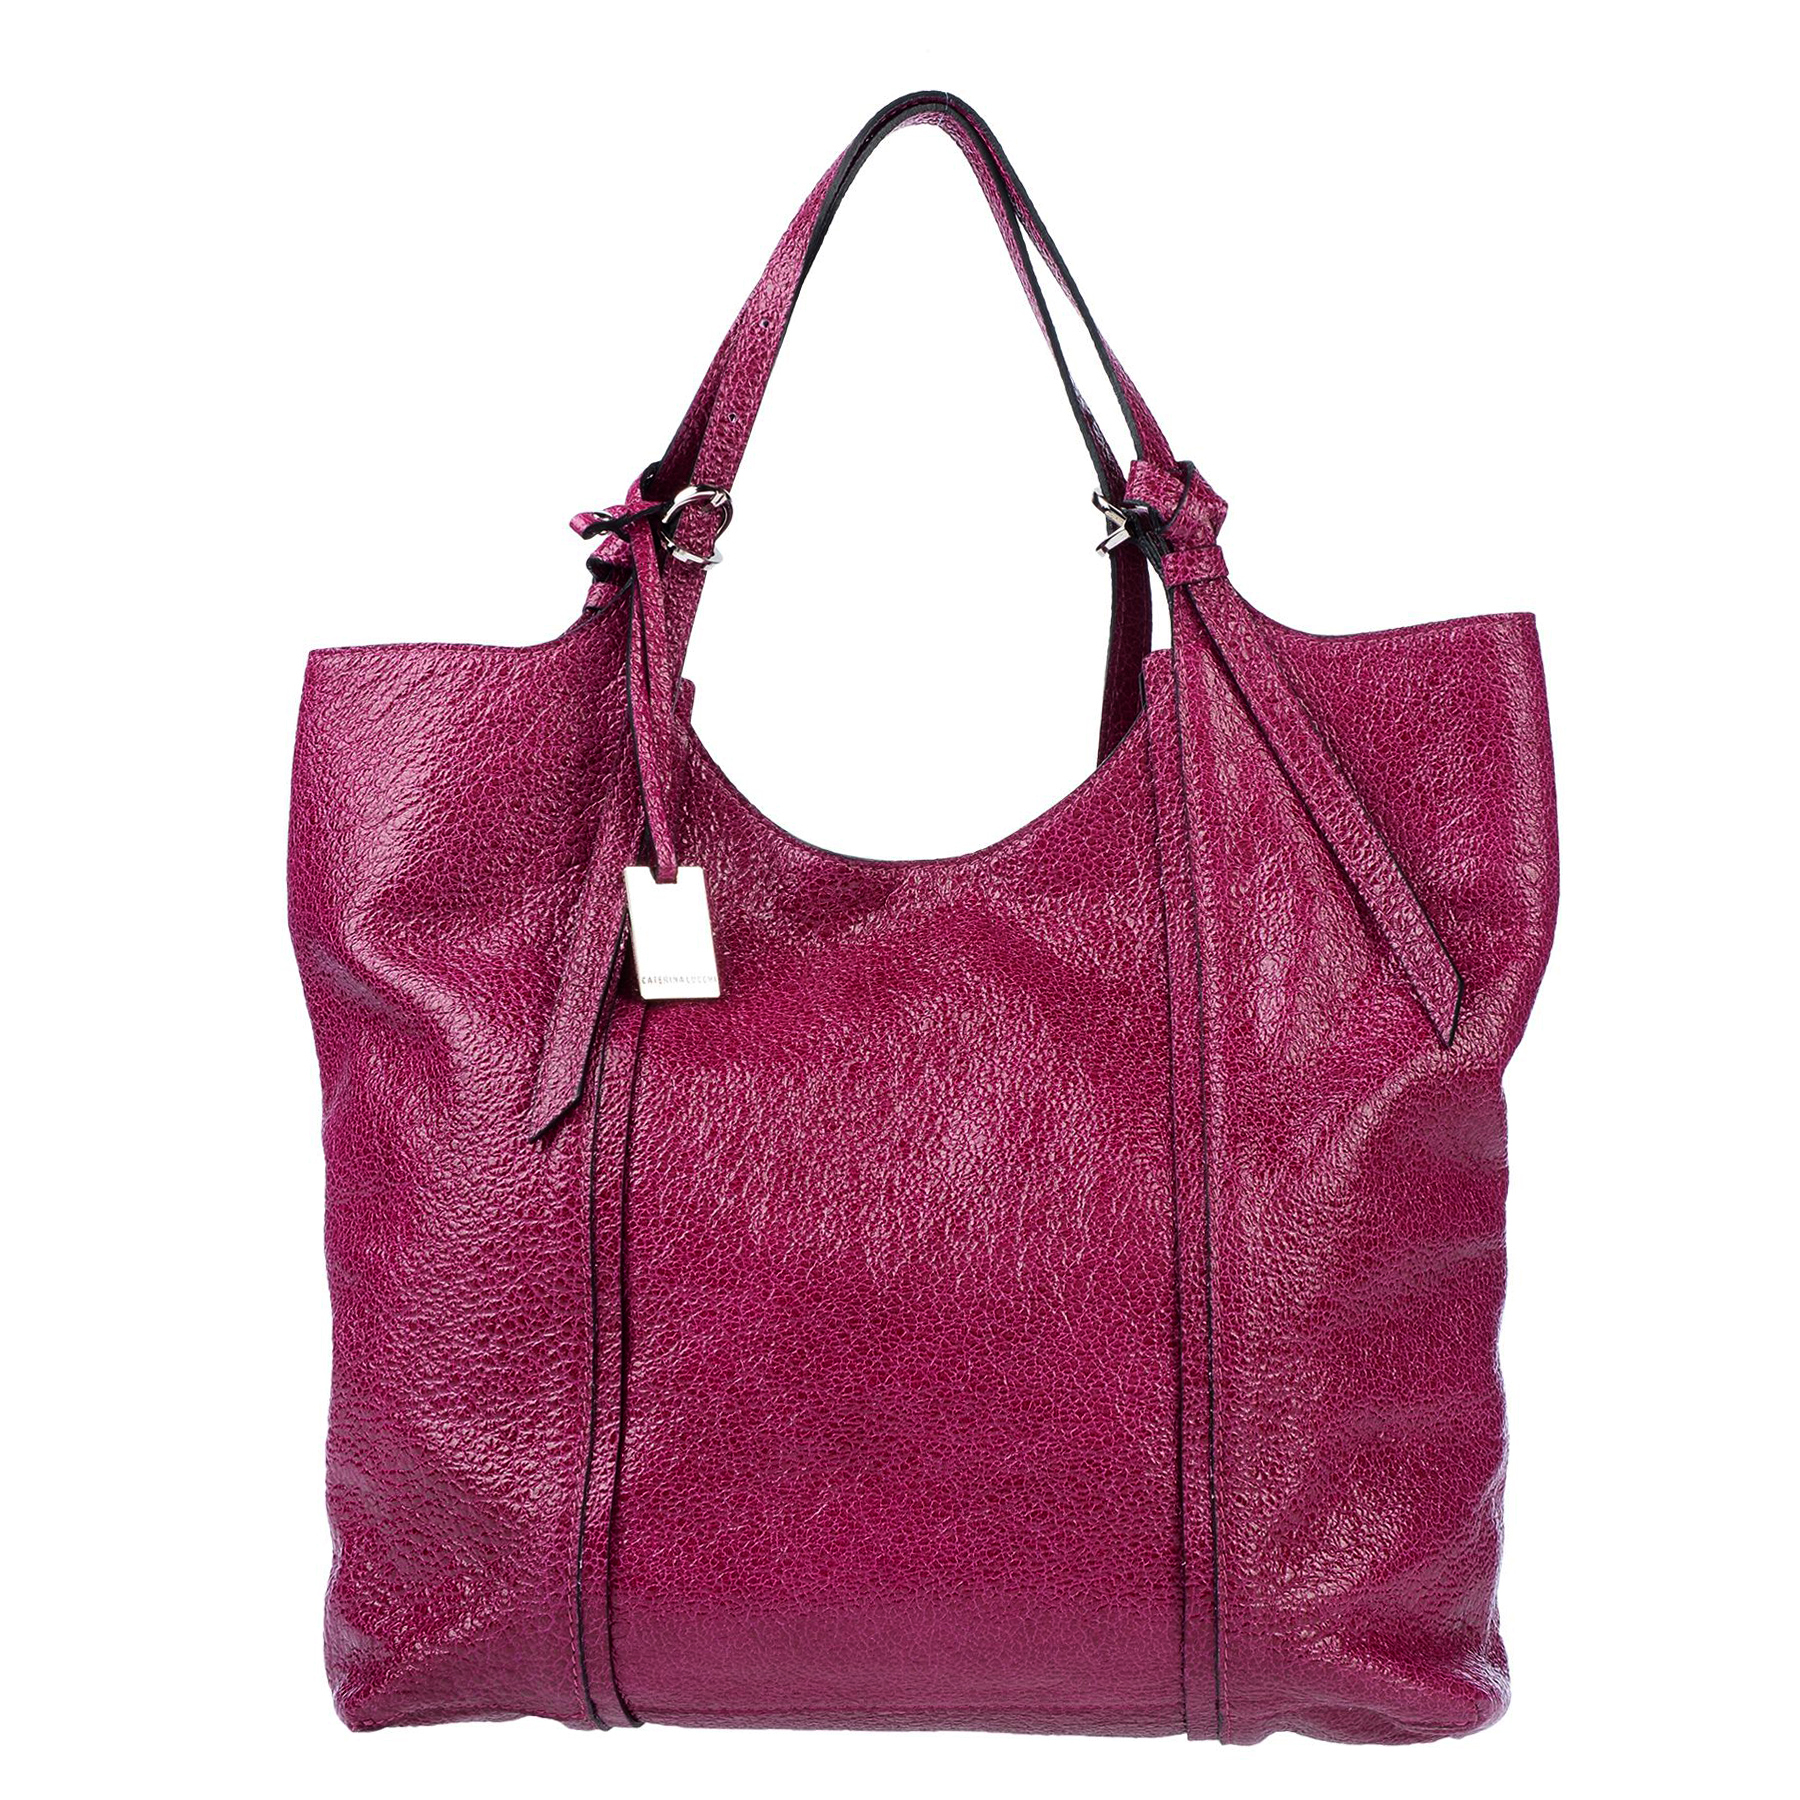 Caterina Lucchi Italian Made Magenta Red Glazed Leather Large Carryall Tote